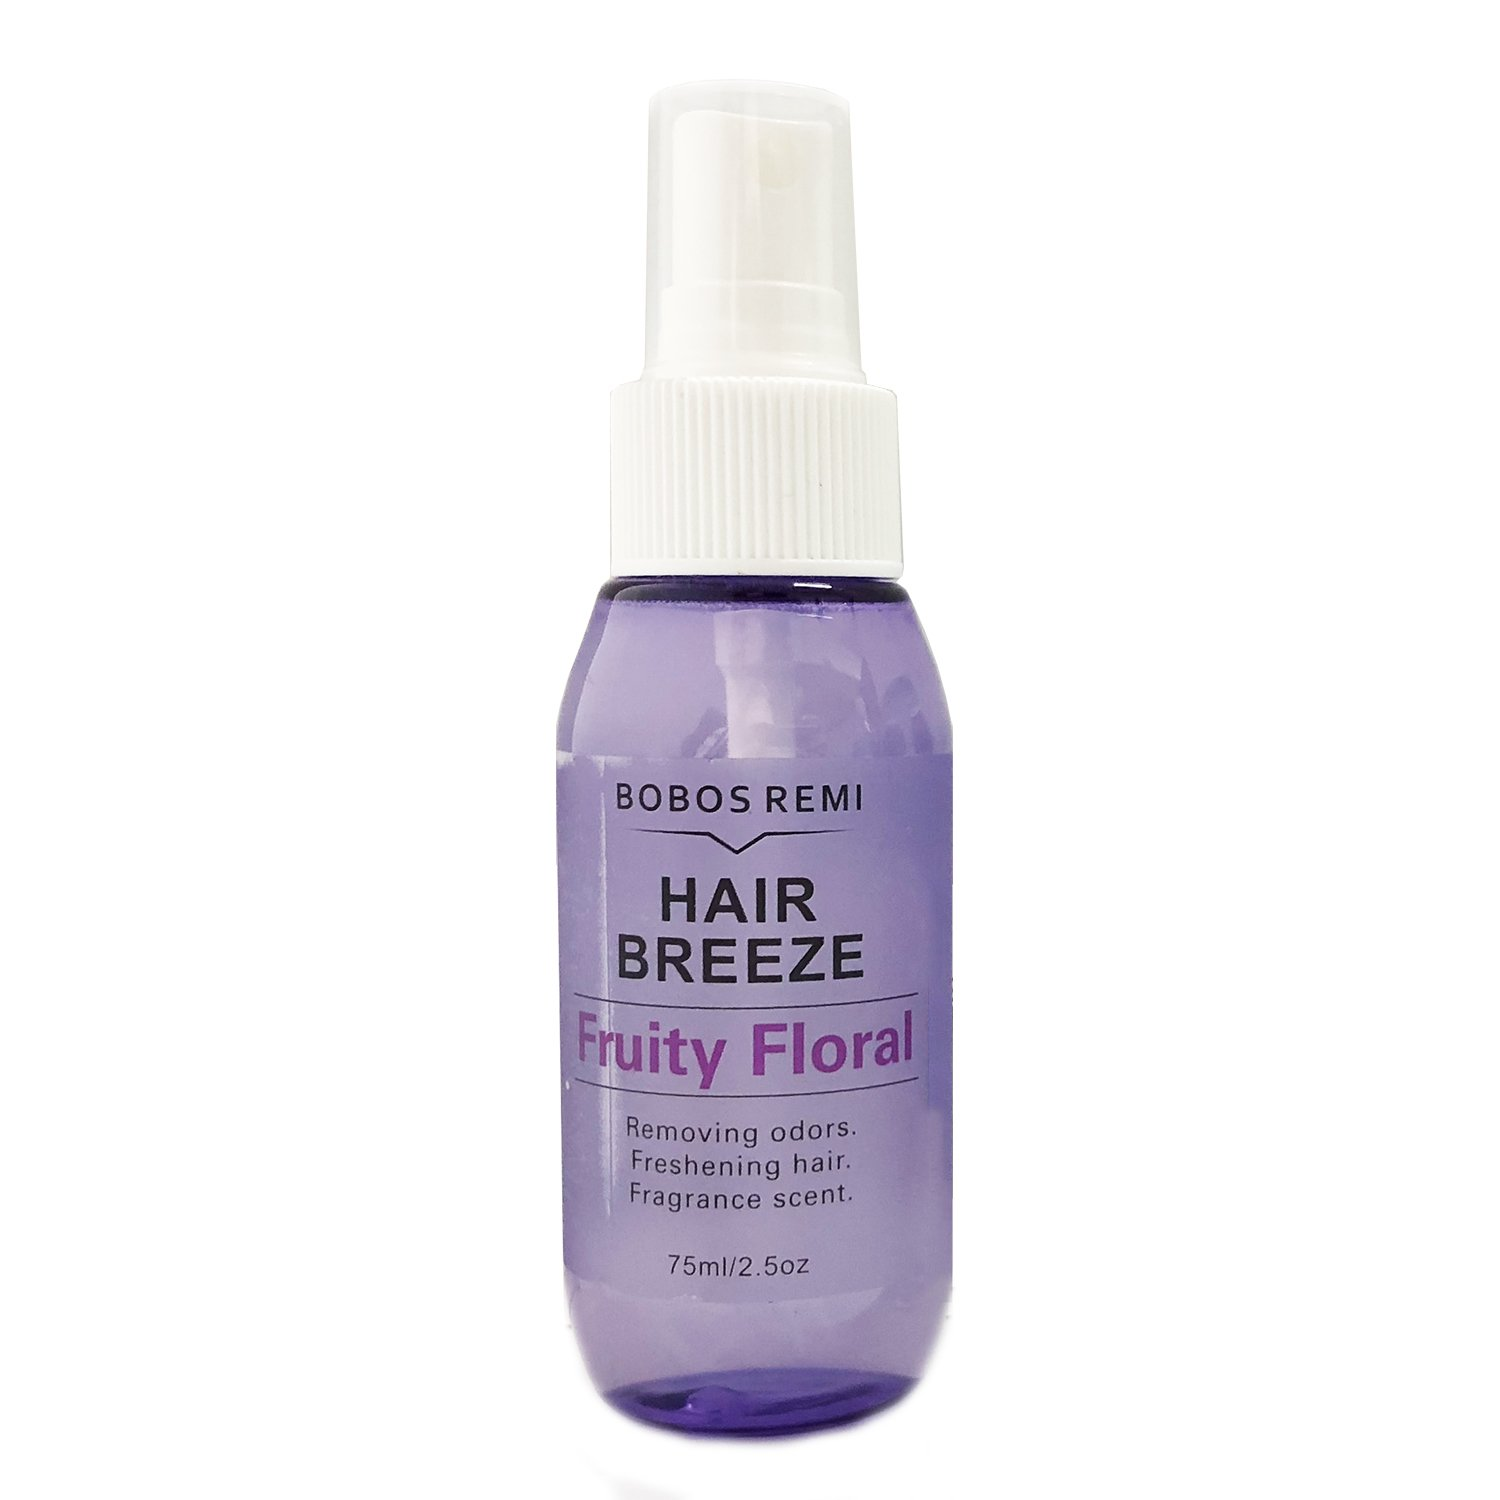 [BOBOS REMI] HAIR BREEZE FRUITY FLORAL 2.5OZ REMOVING ODOR REFRESHER CUME Cosmetics